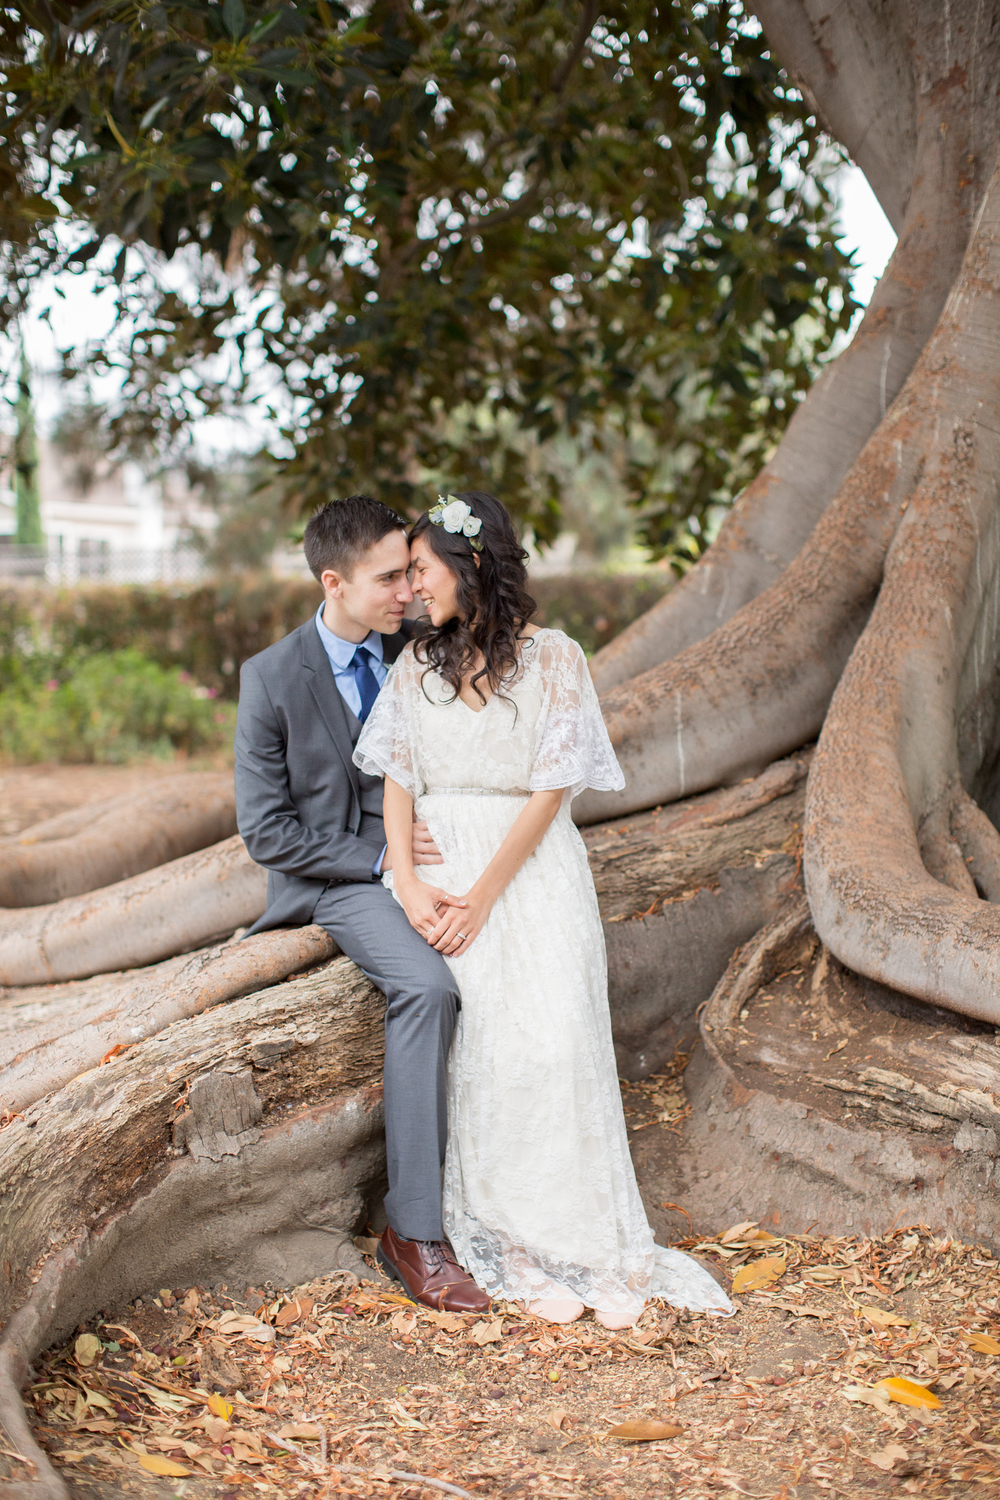 Chico California Wedding and Engagement Photography by TréCreative - Fremont Wedding Photography (116 of 261).jpg